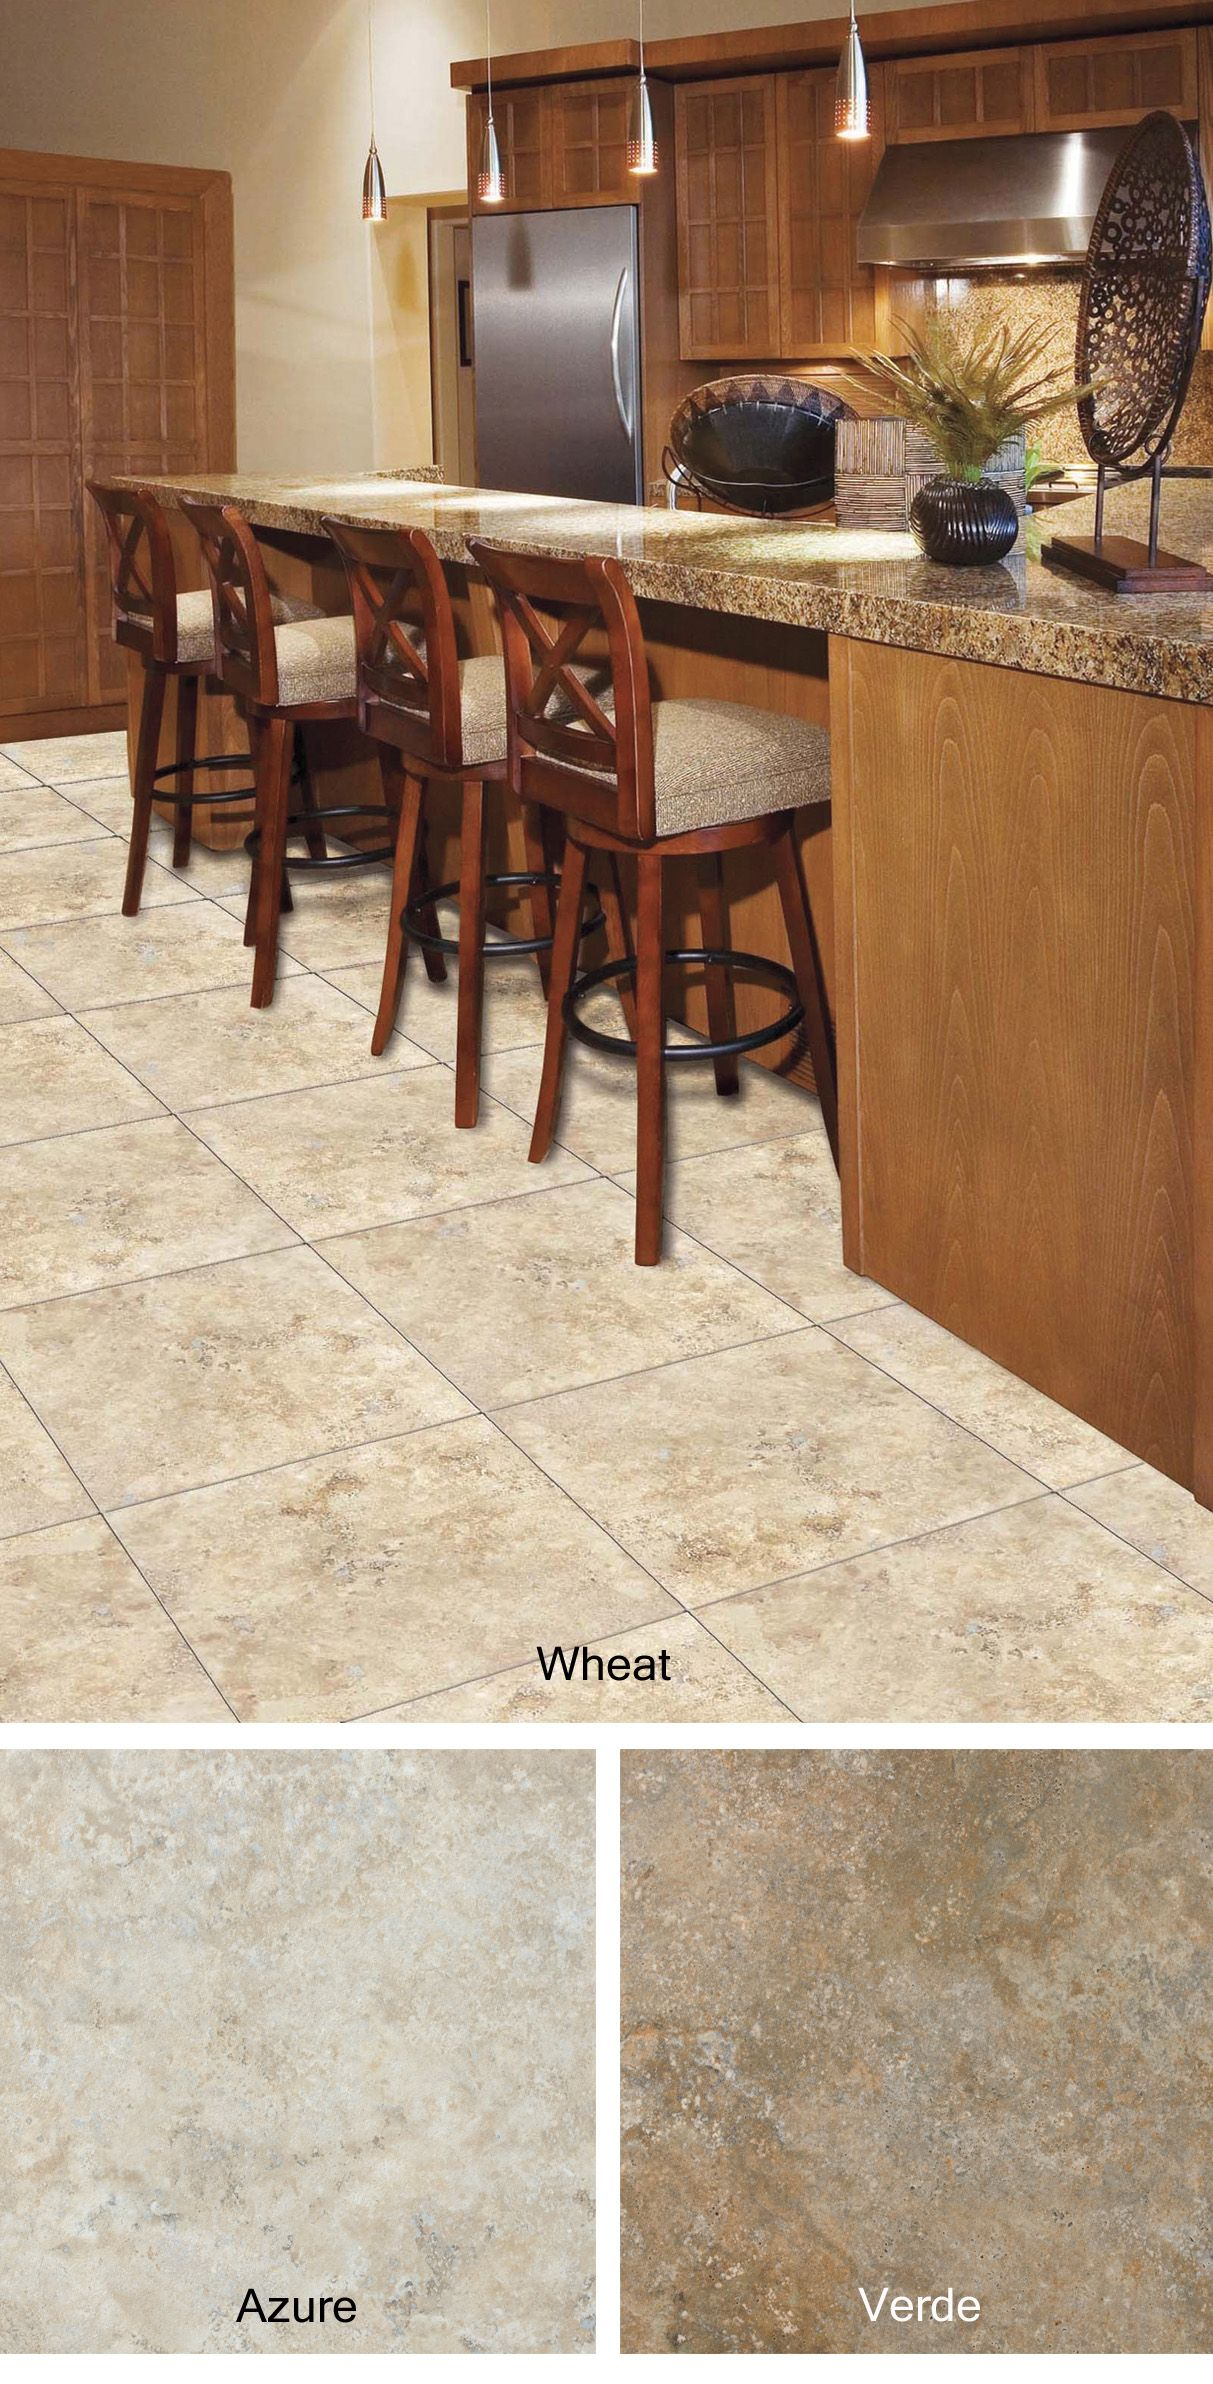 The Wheat Is A Luxury Vinyl Floor Tile That Is Groutable Made To